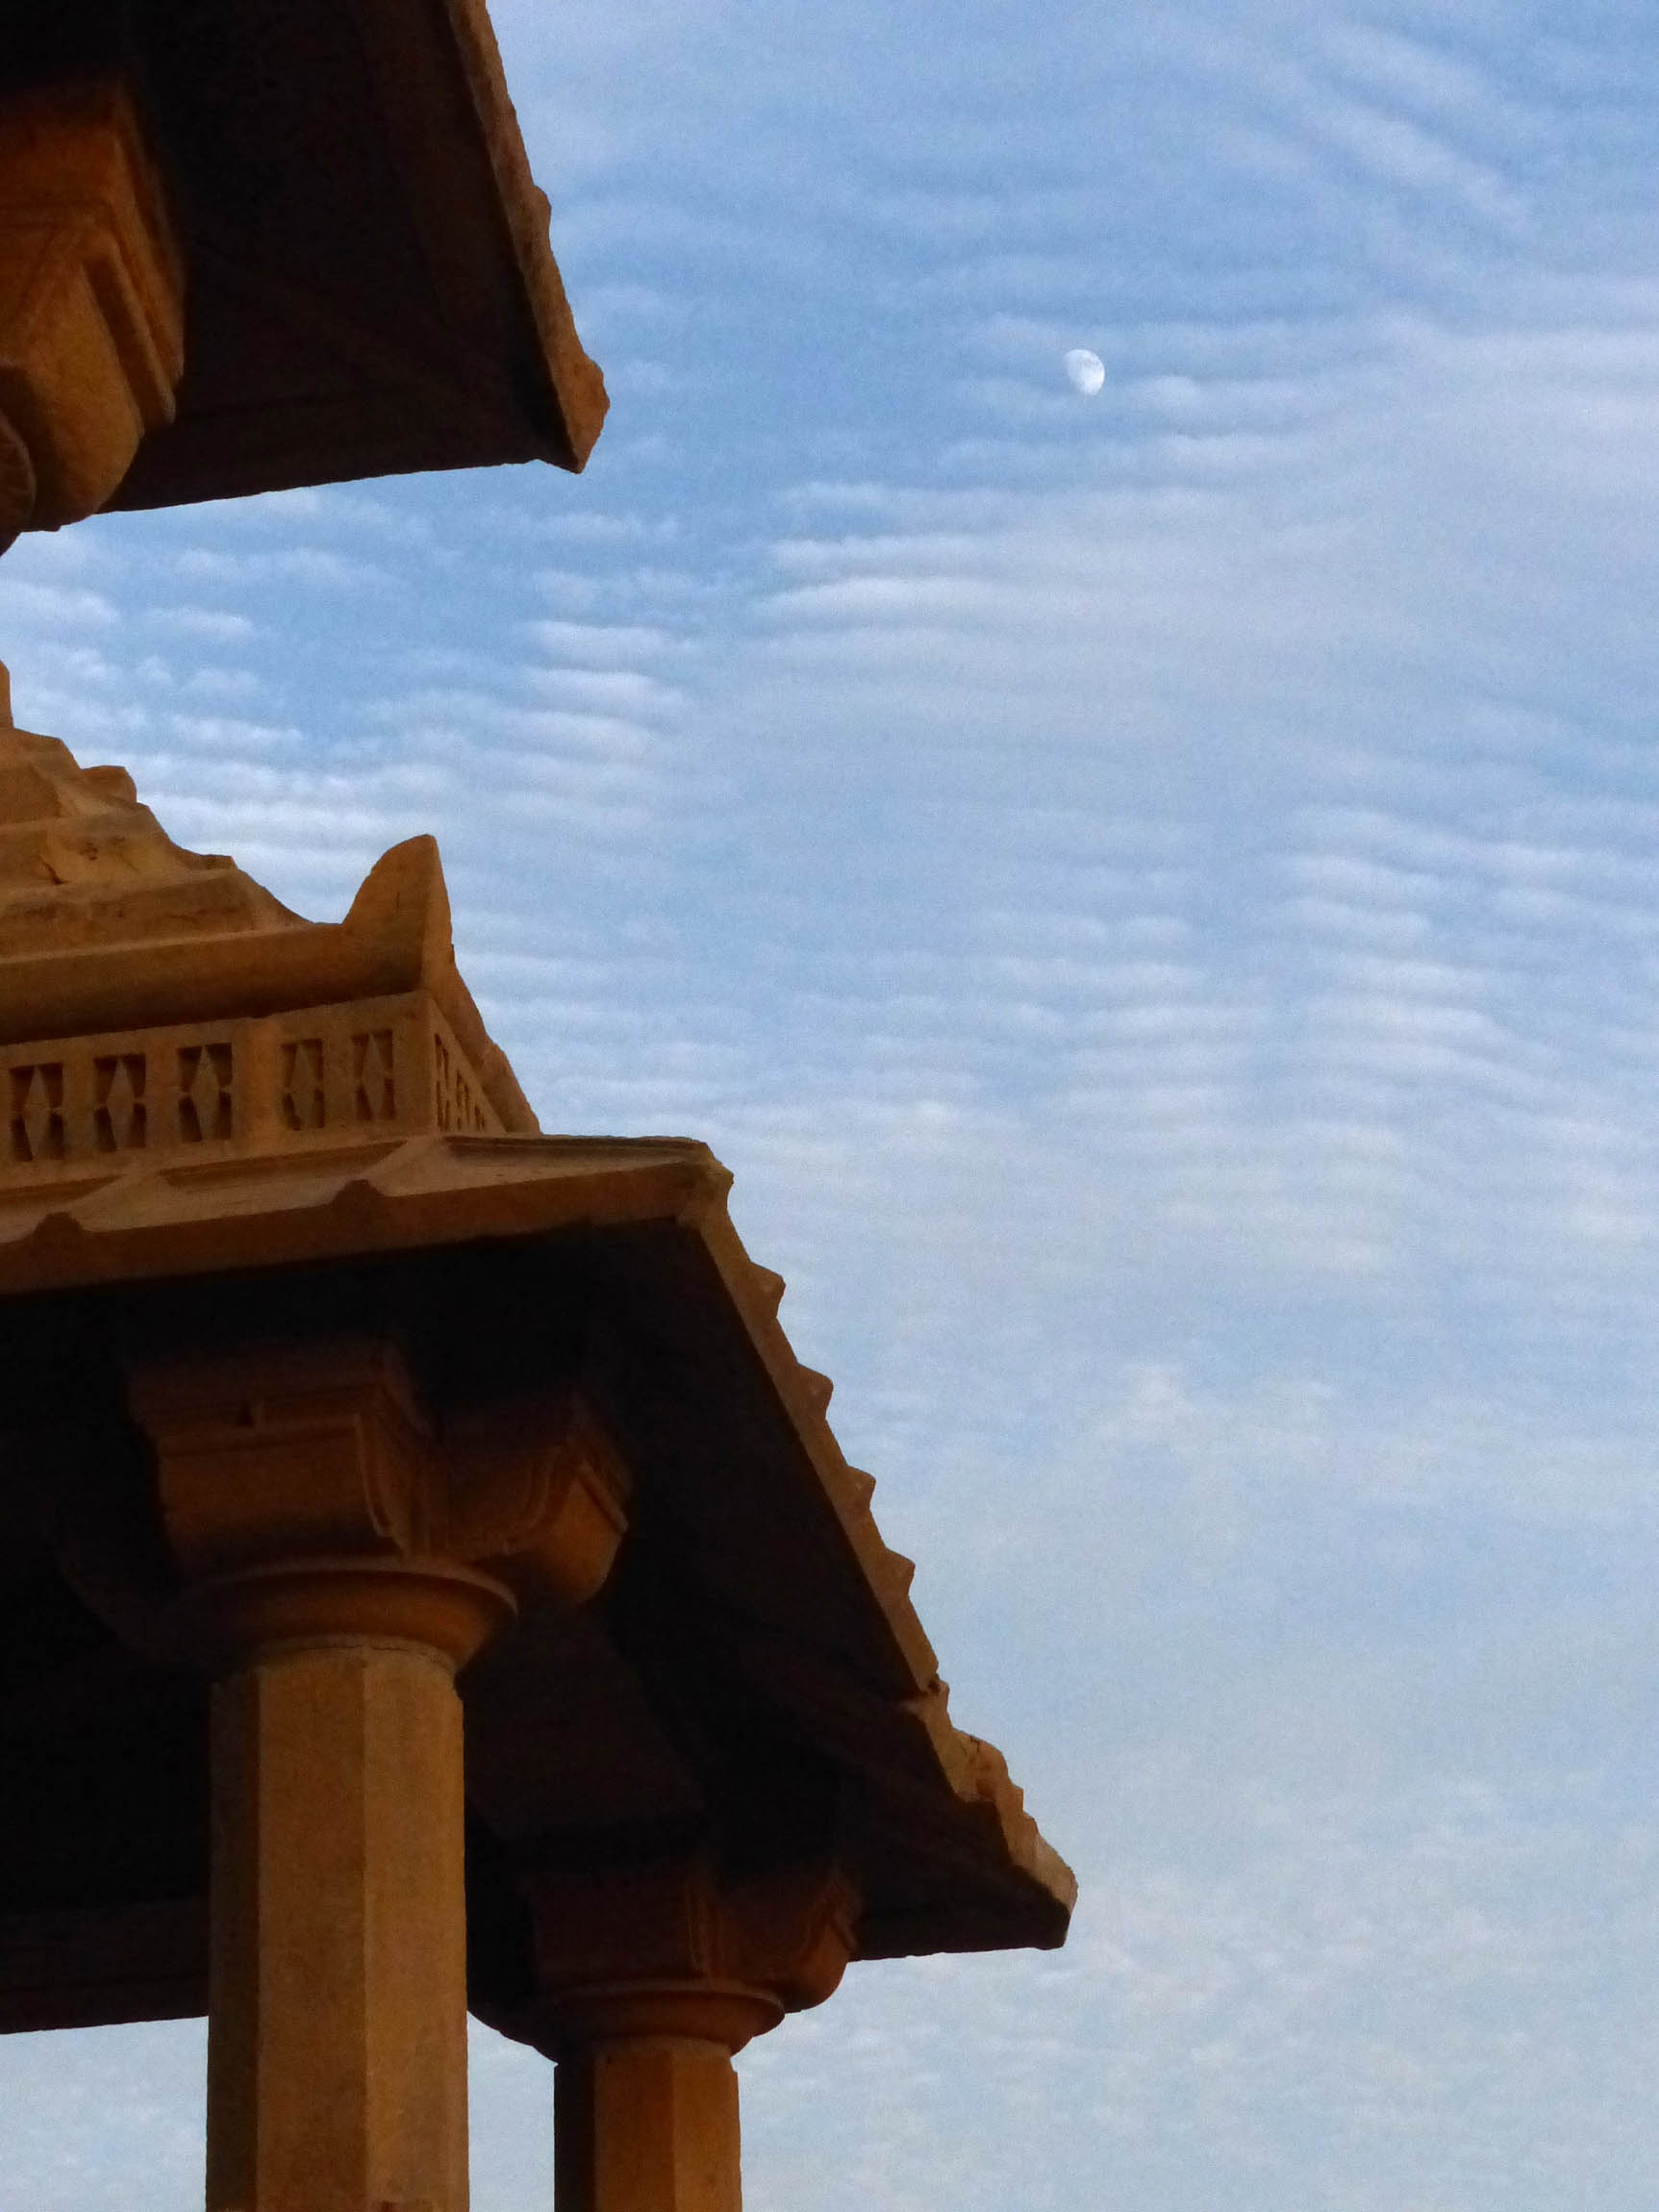 Moon over an old portico